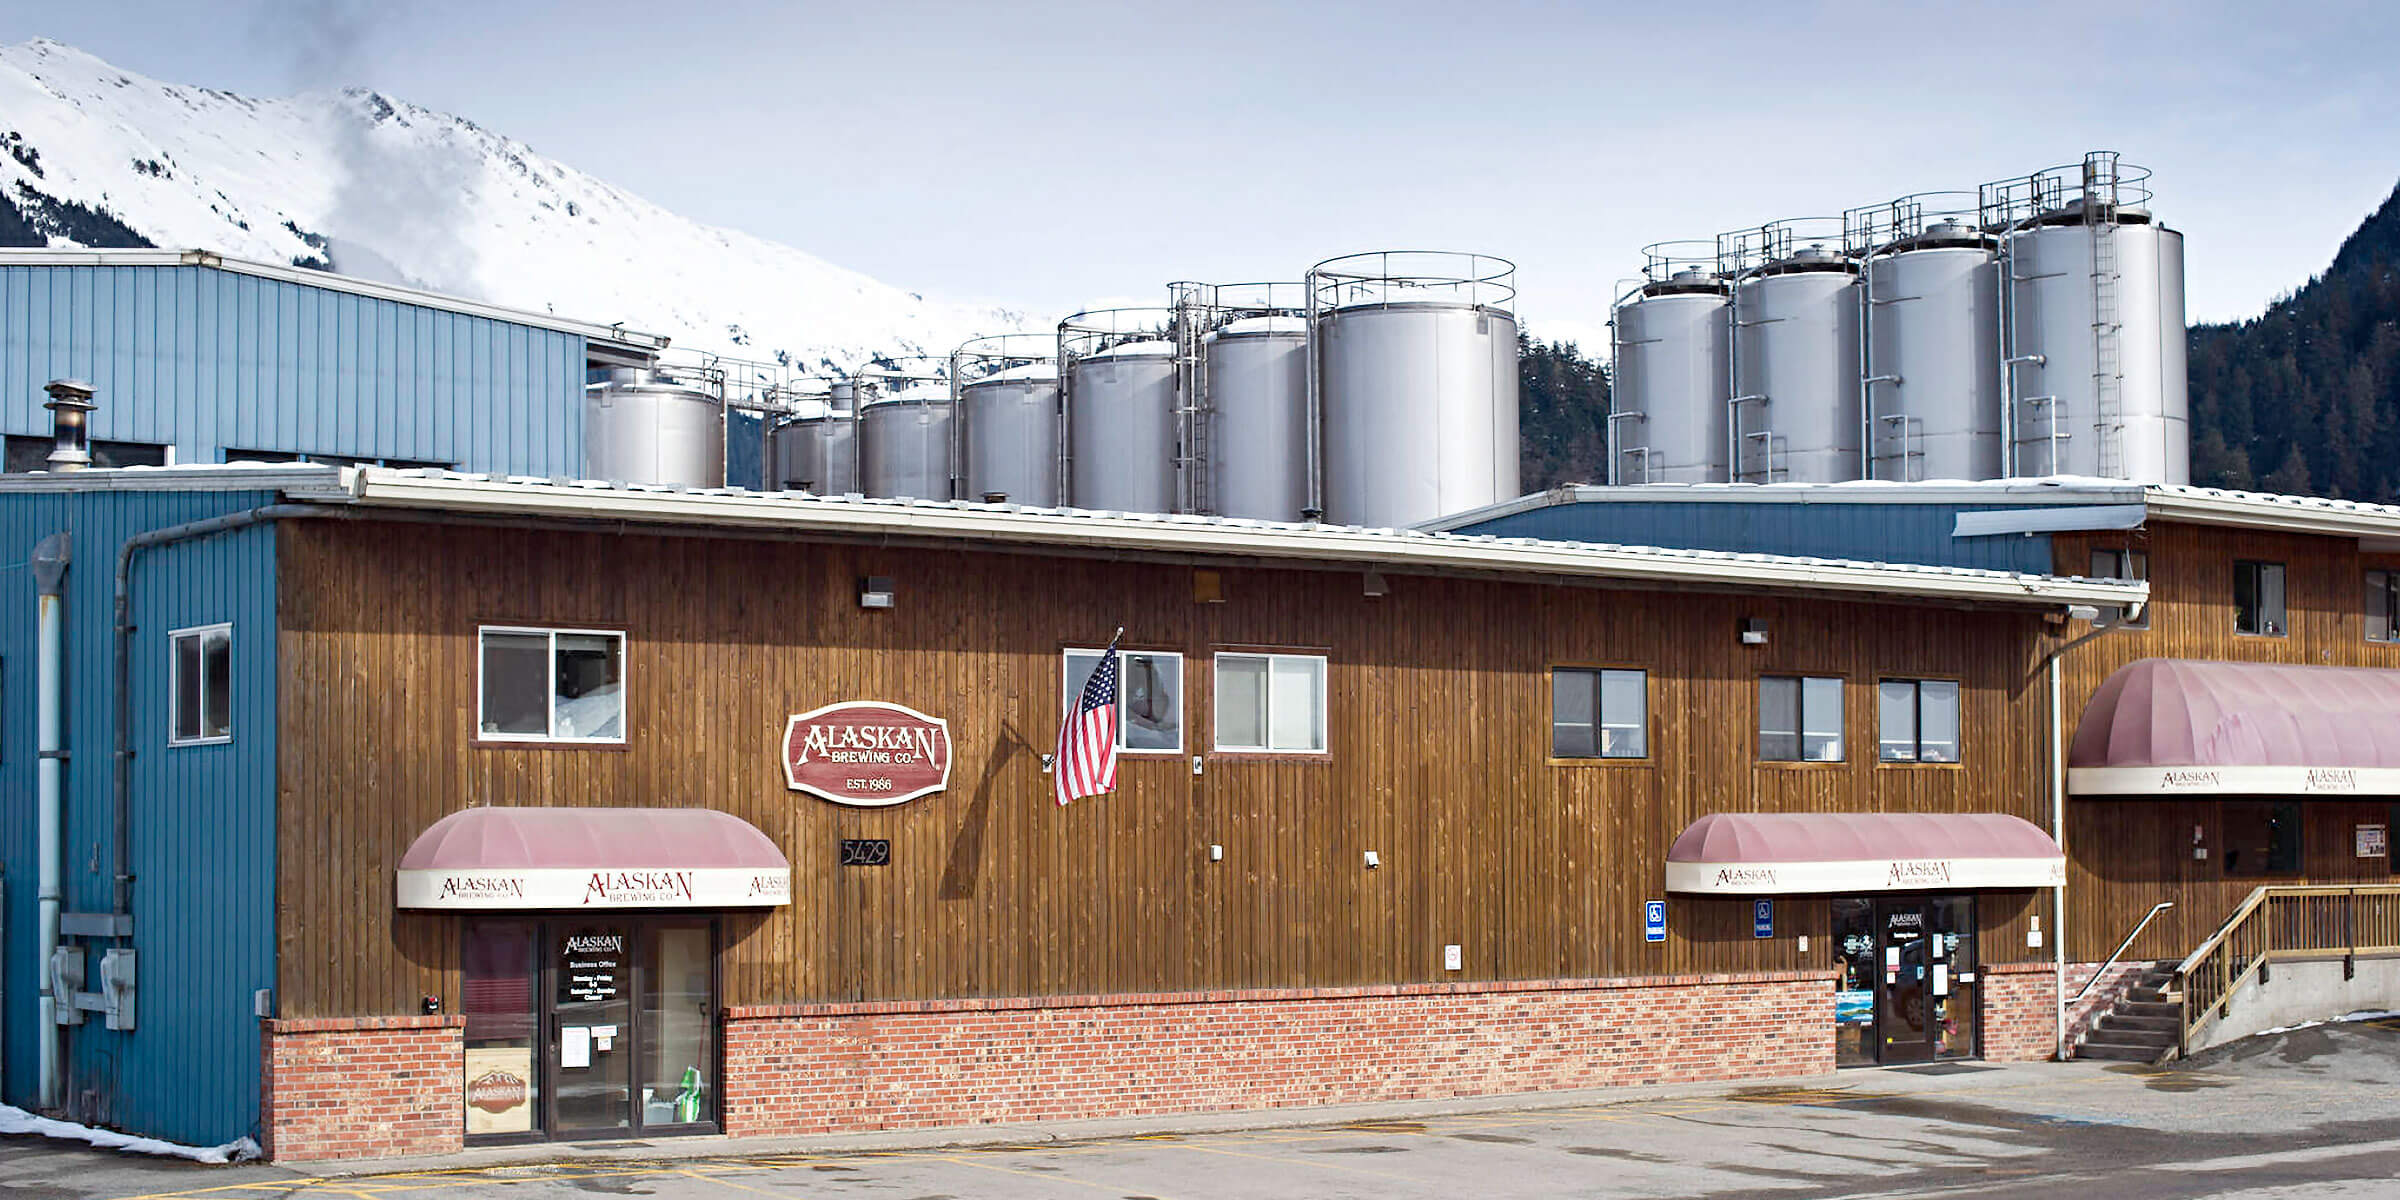 Outside the Entrance to the Brewery at Alaskan Brewing Co. in Juneau, Alaska